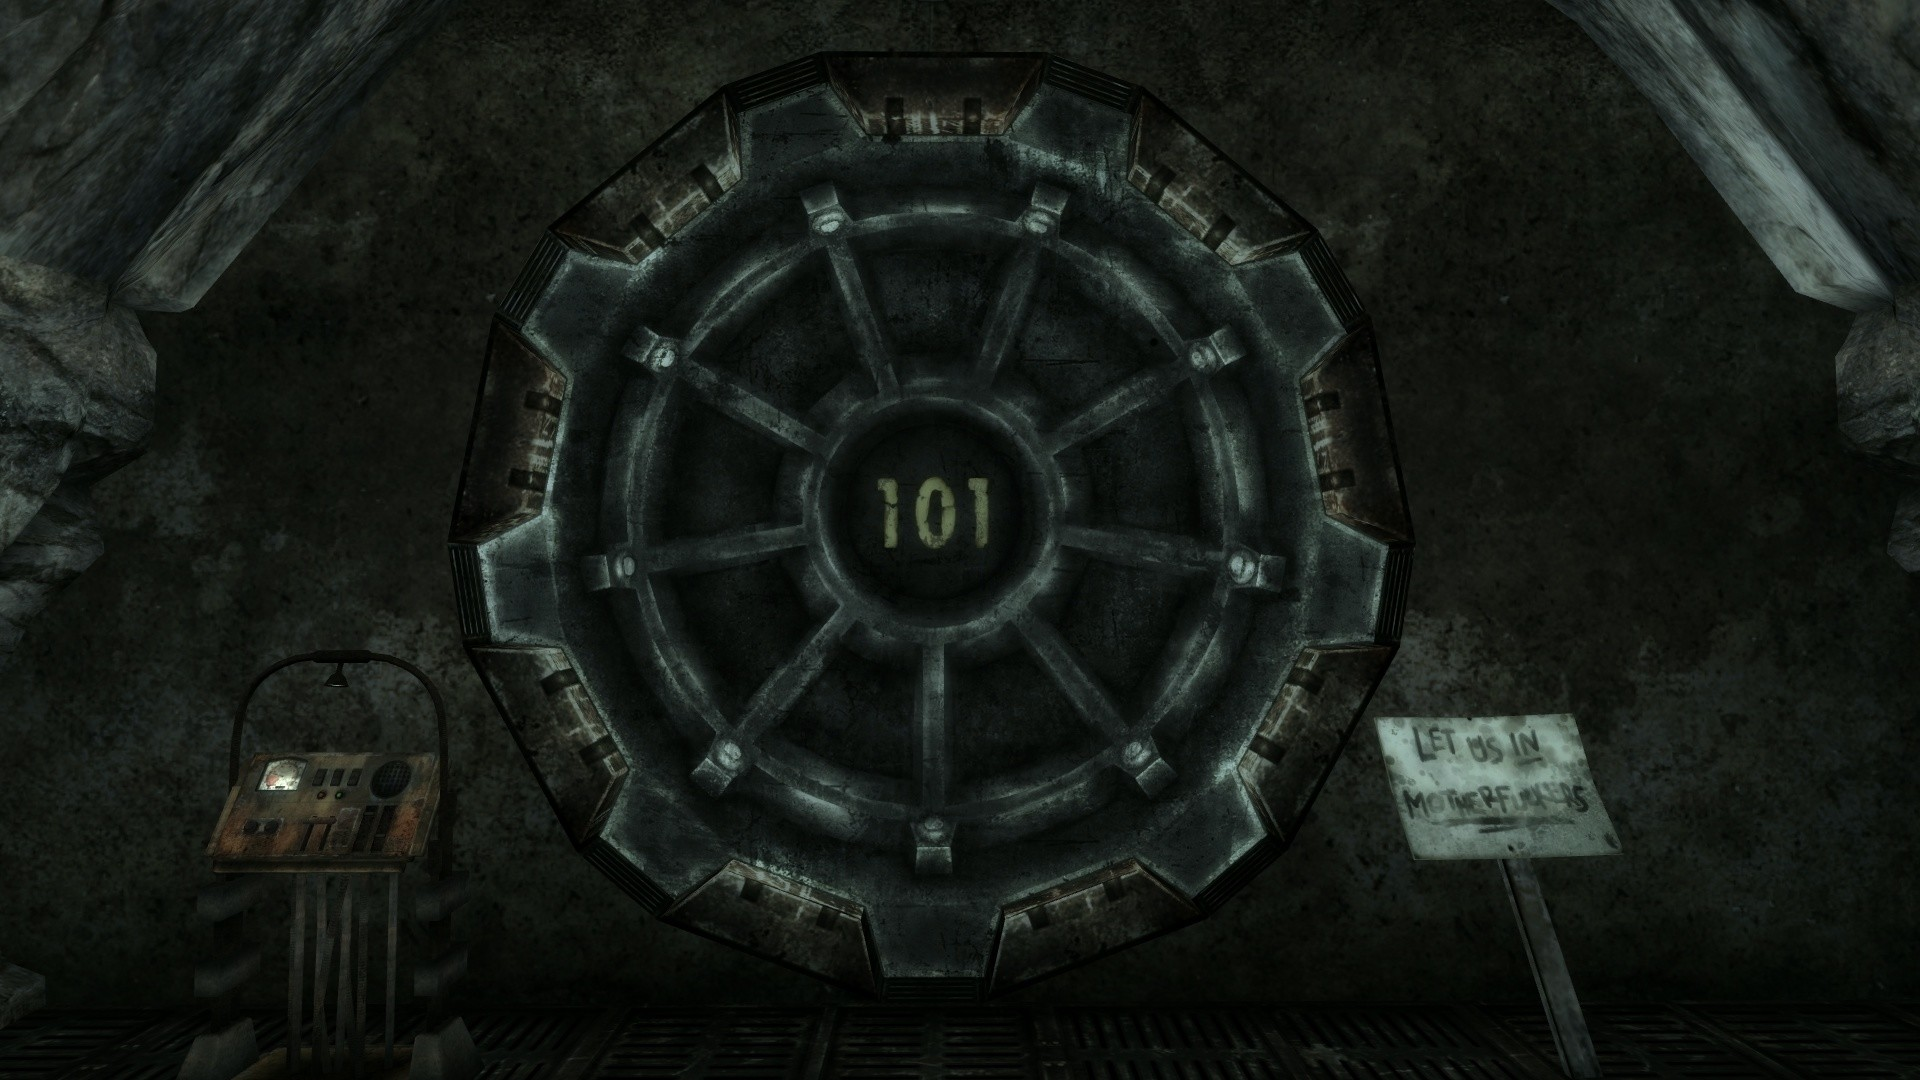 …  https://vignette2.wikia.nocookie.net/fallout/images/c/c6/Vault_19.png/revision/latest?cb=20140817020139  as examples, it seems weird to me that vault-tec …